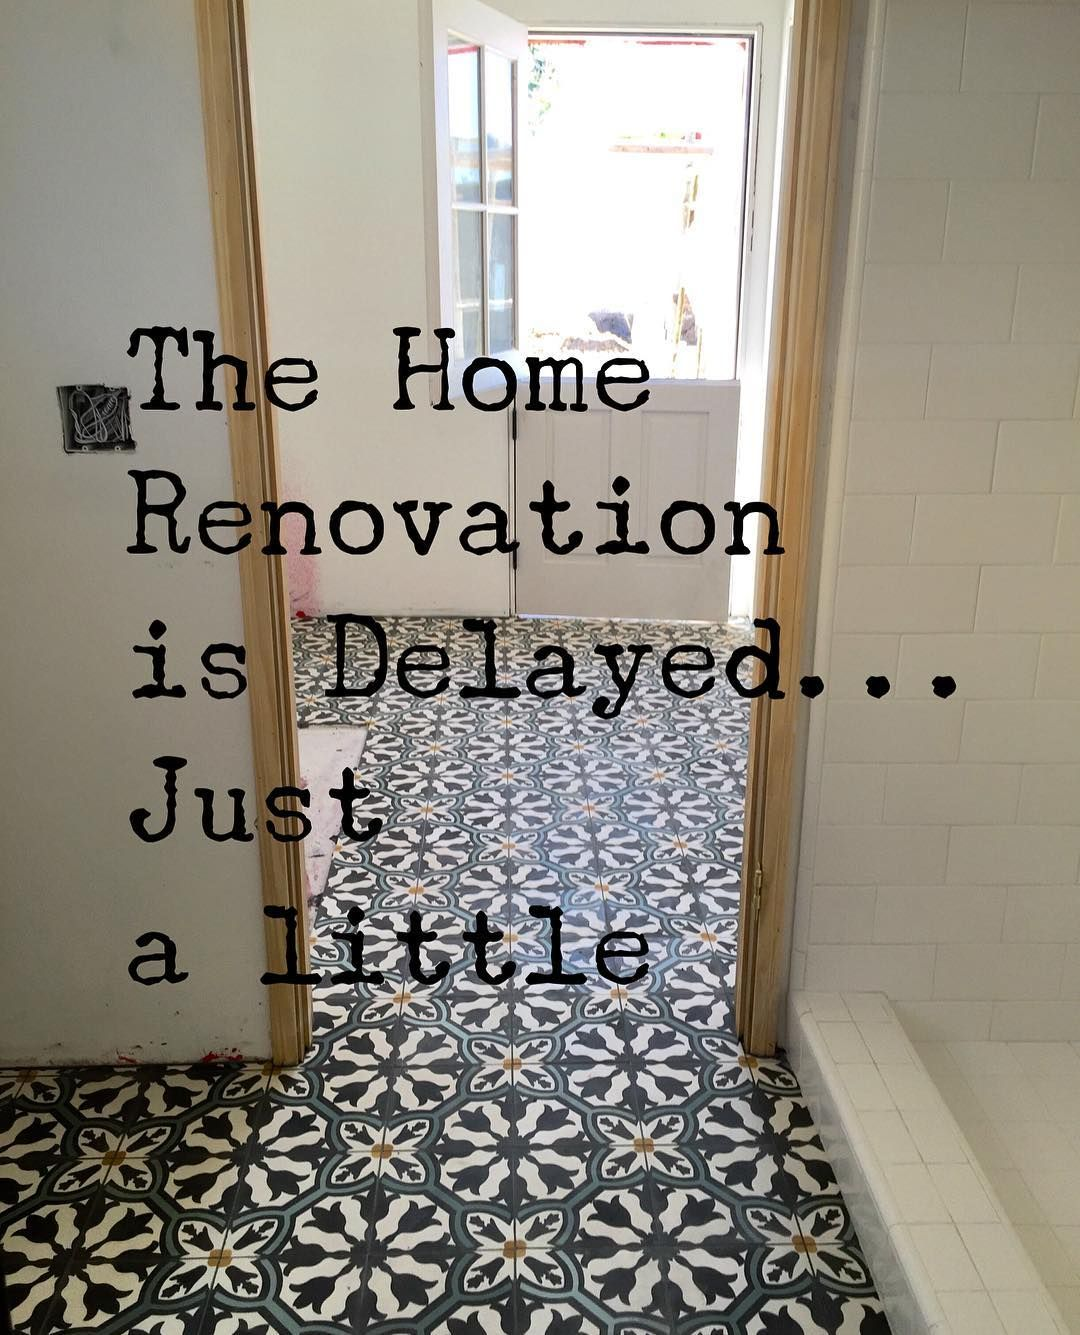 @suzannestavert on Instagram: Our #emptynest #homerenovation hit a little bump in the road- On...